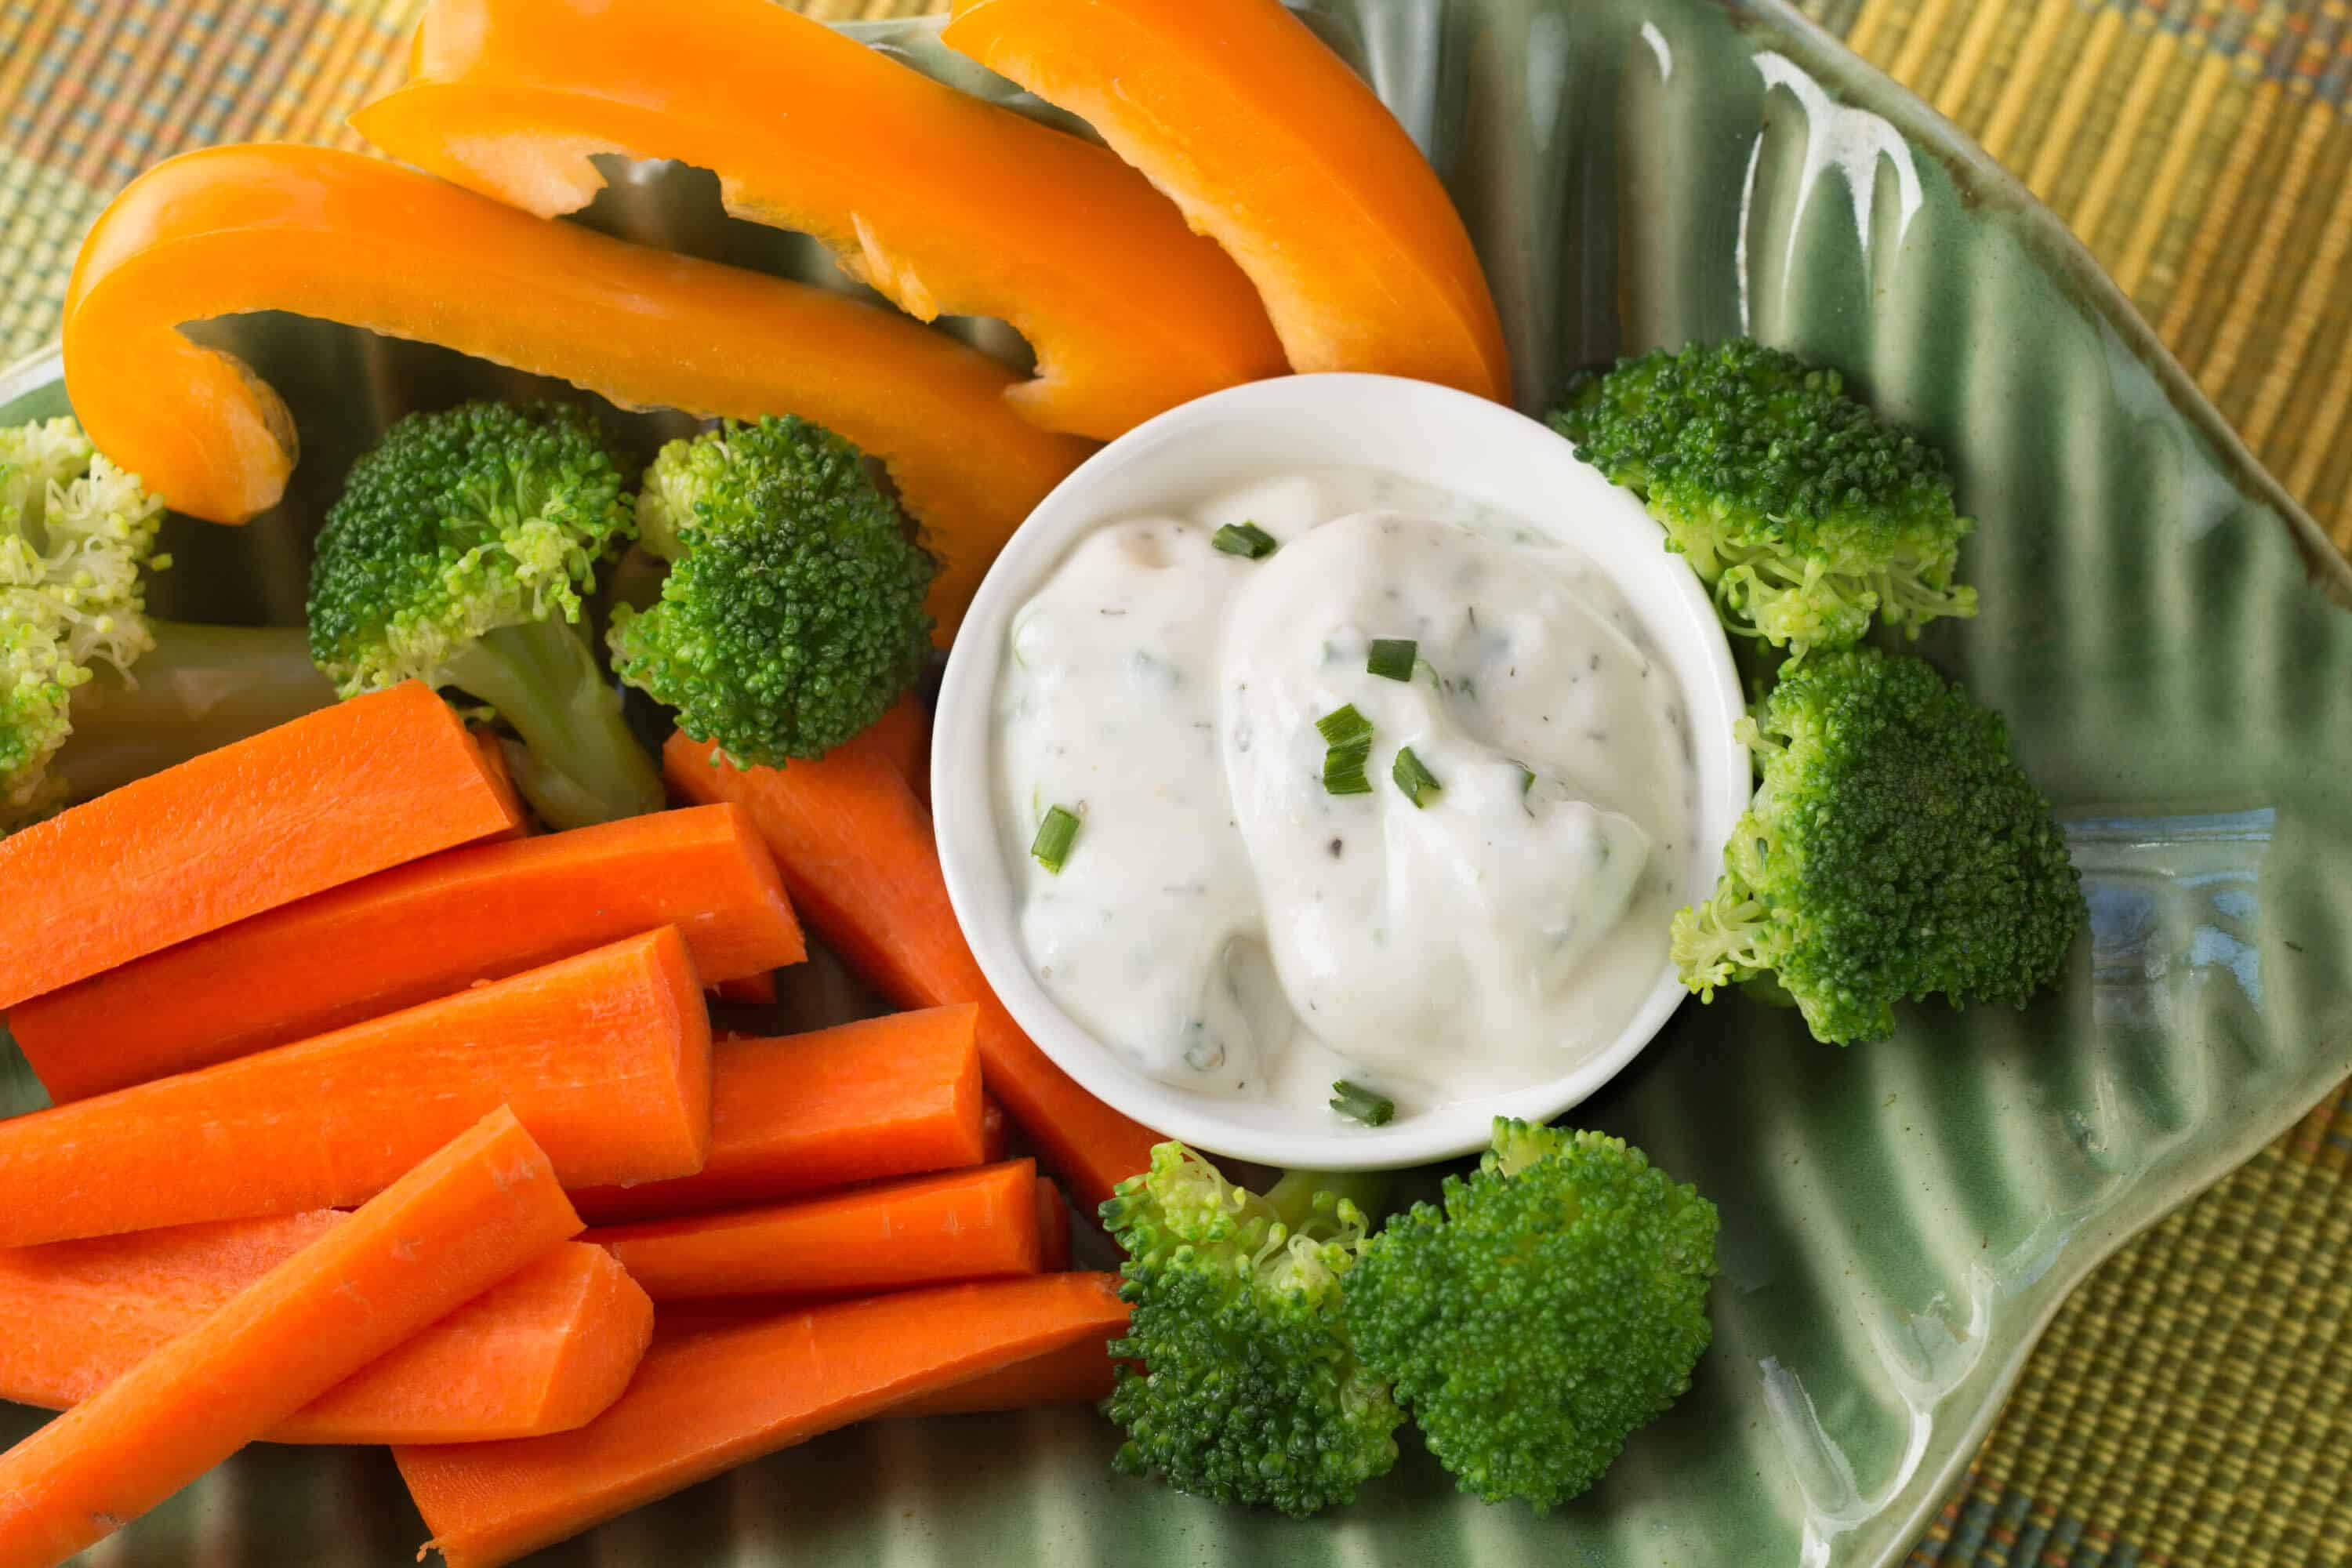 Homemade Ranch Dressing with Carrots and Broccoli for site